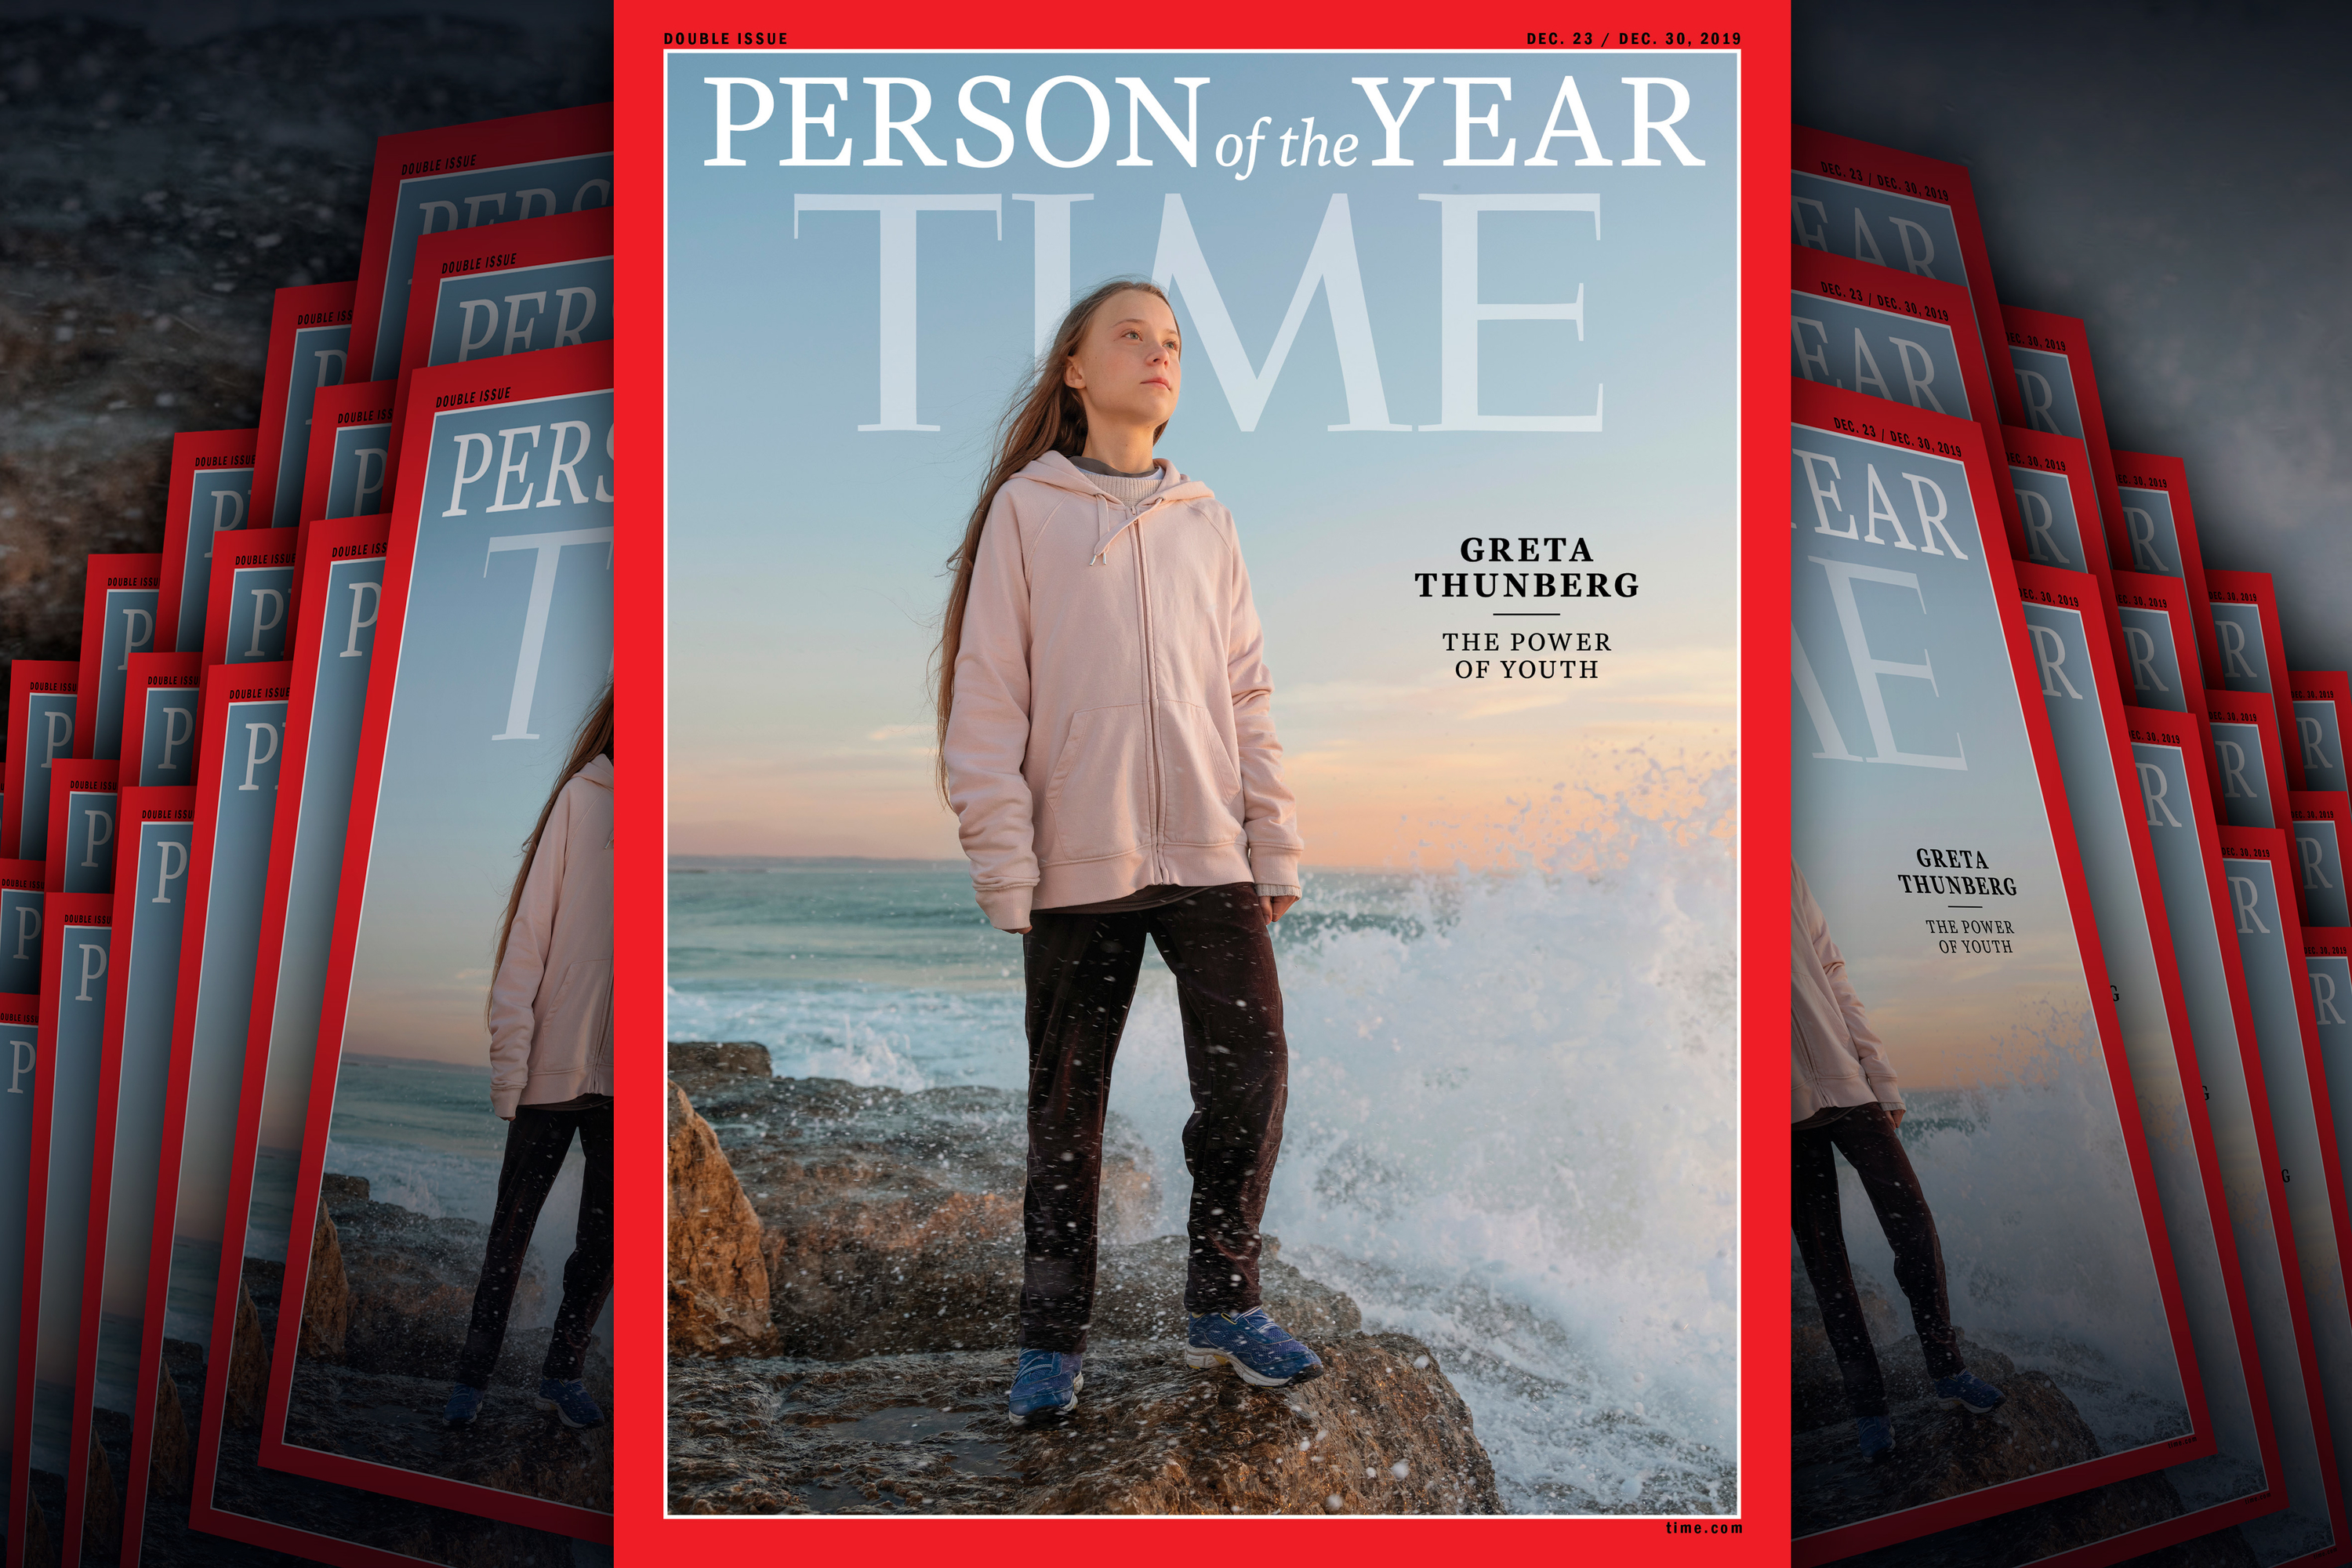 Greta Thunberg is Time's Person of the Year and Disney is accused over 'Frozen 2' promotional tweets